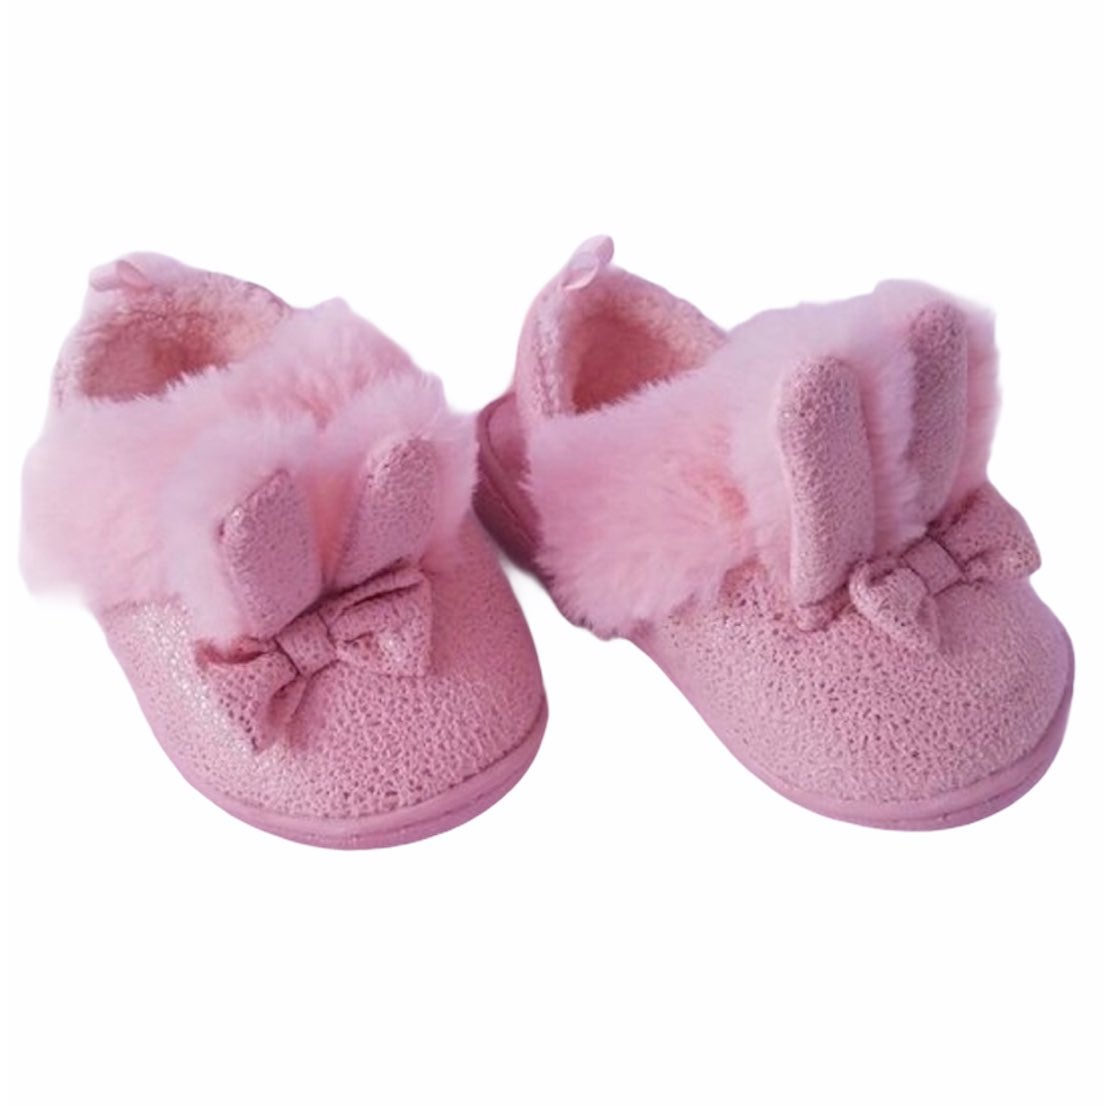 3/$25 NWOT Faux Fur Bunny Slippers